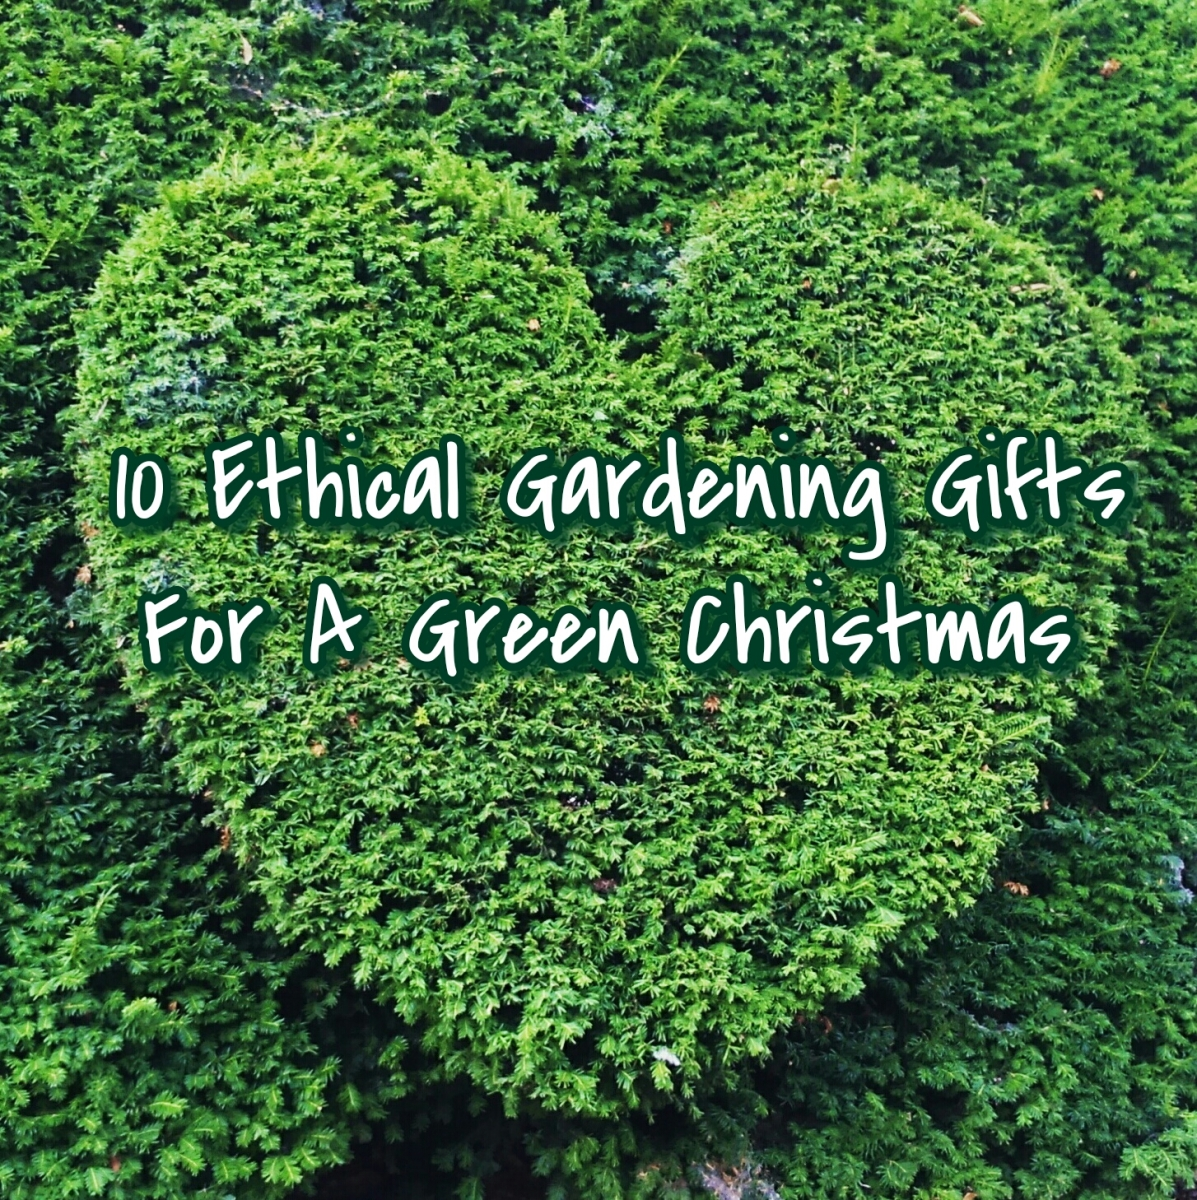 10 Ethical Gardening Gifts For A Green Christmas